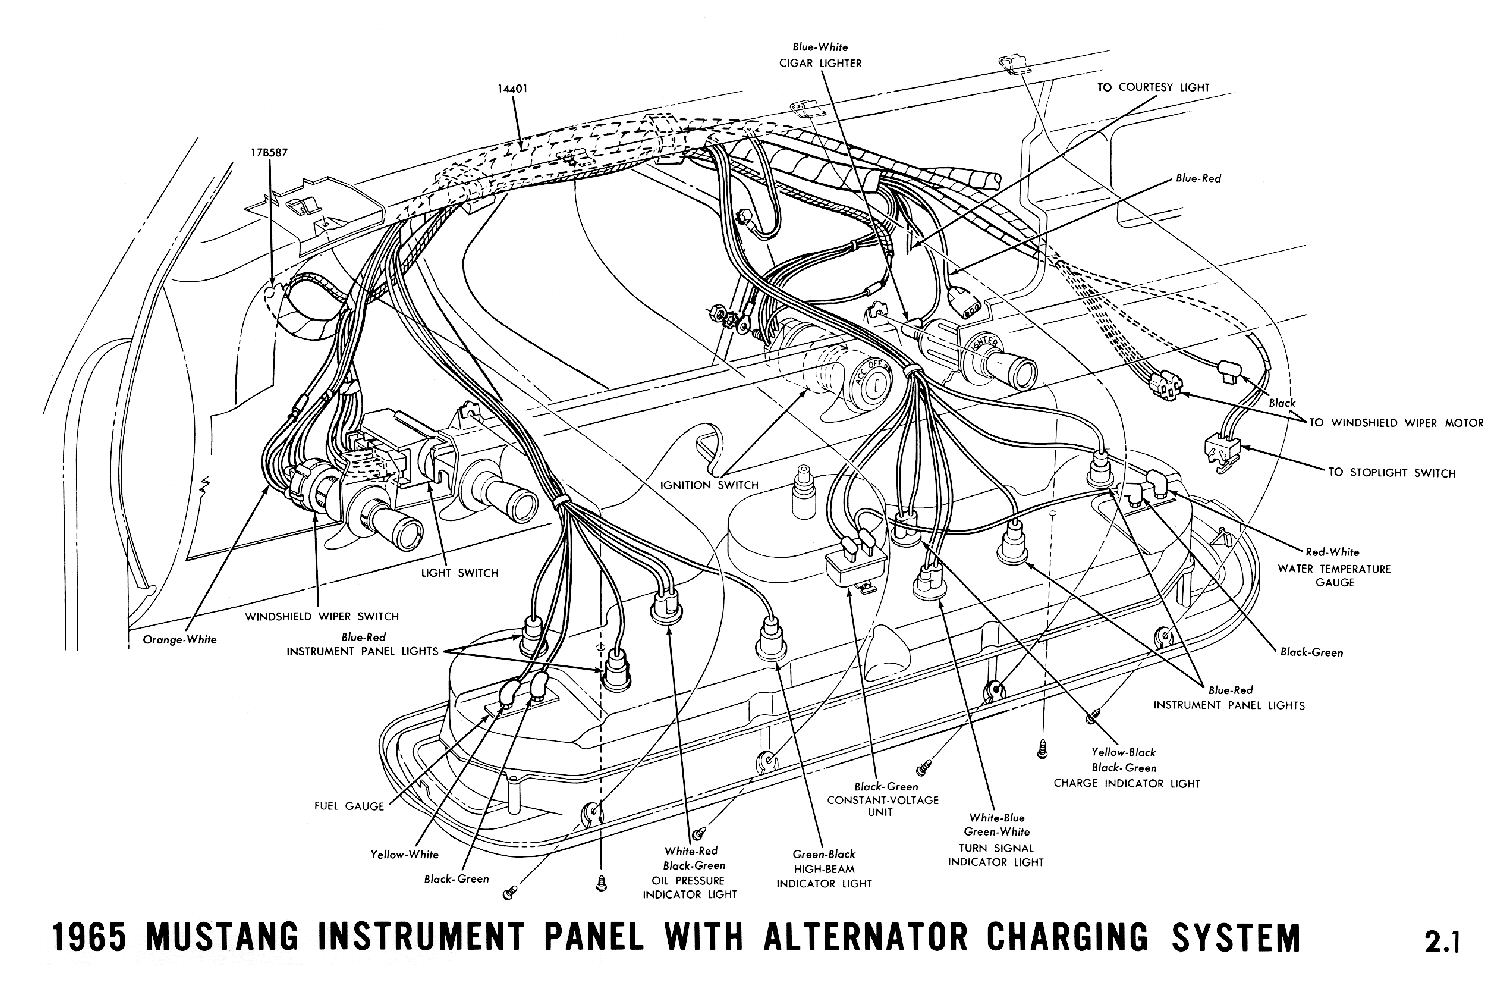 1965 Mustang Wiring Diagrams on 1967 chevelle wiper motor wiring diagram